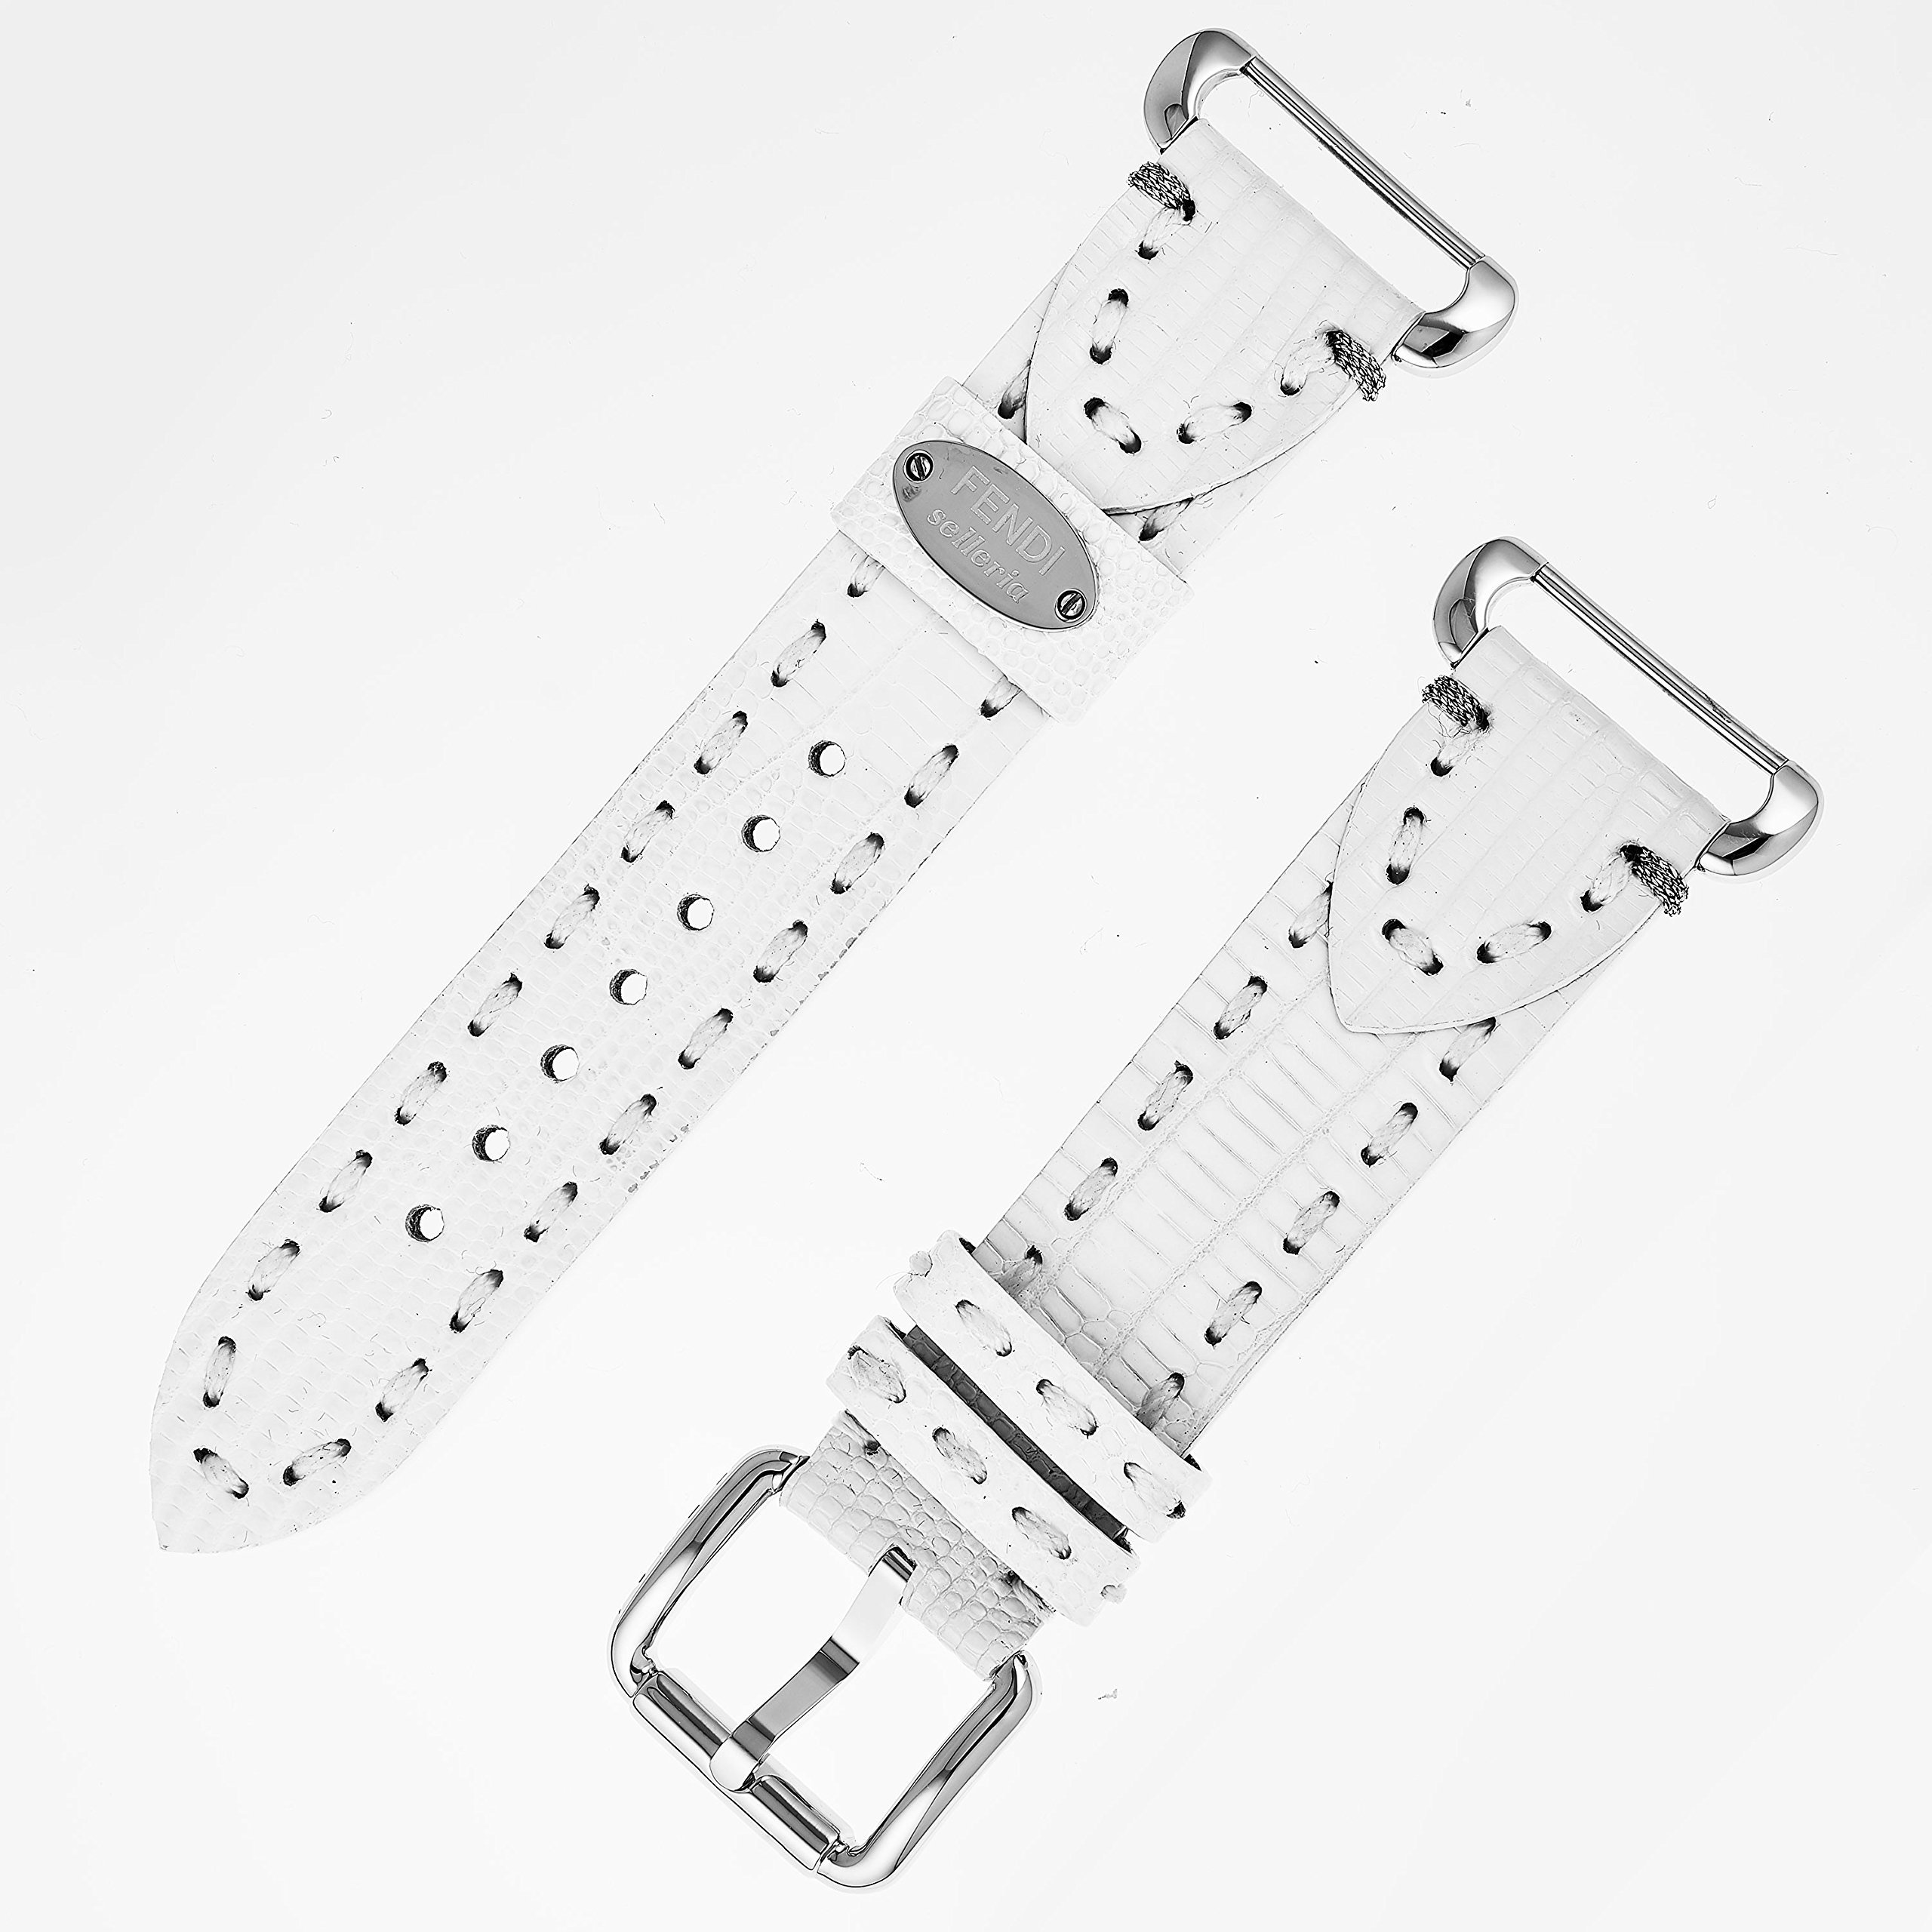 Fendi Selleria Interchangeable Replacement Watch Band - 18mm White Calfskin Leather Strap with Pin Buckle PS18R04S